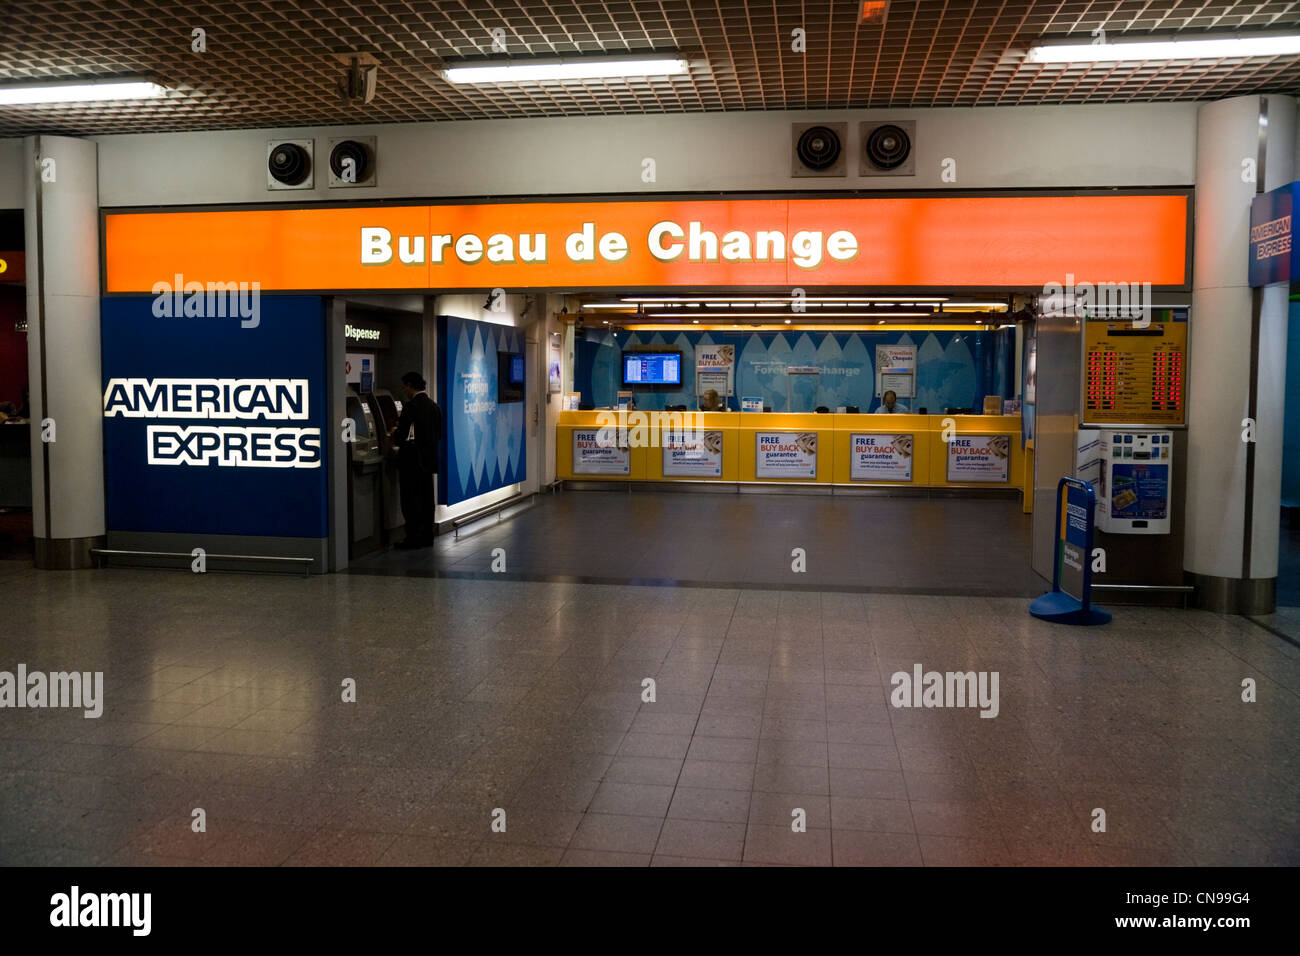 Bureau De Change Office Operated By American Express At Heathrow Airport Terminal  Three London Uk